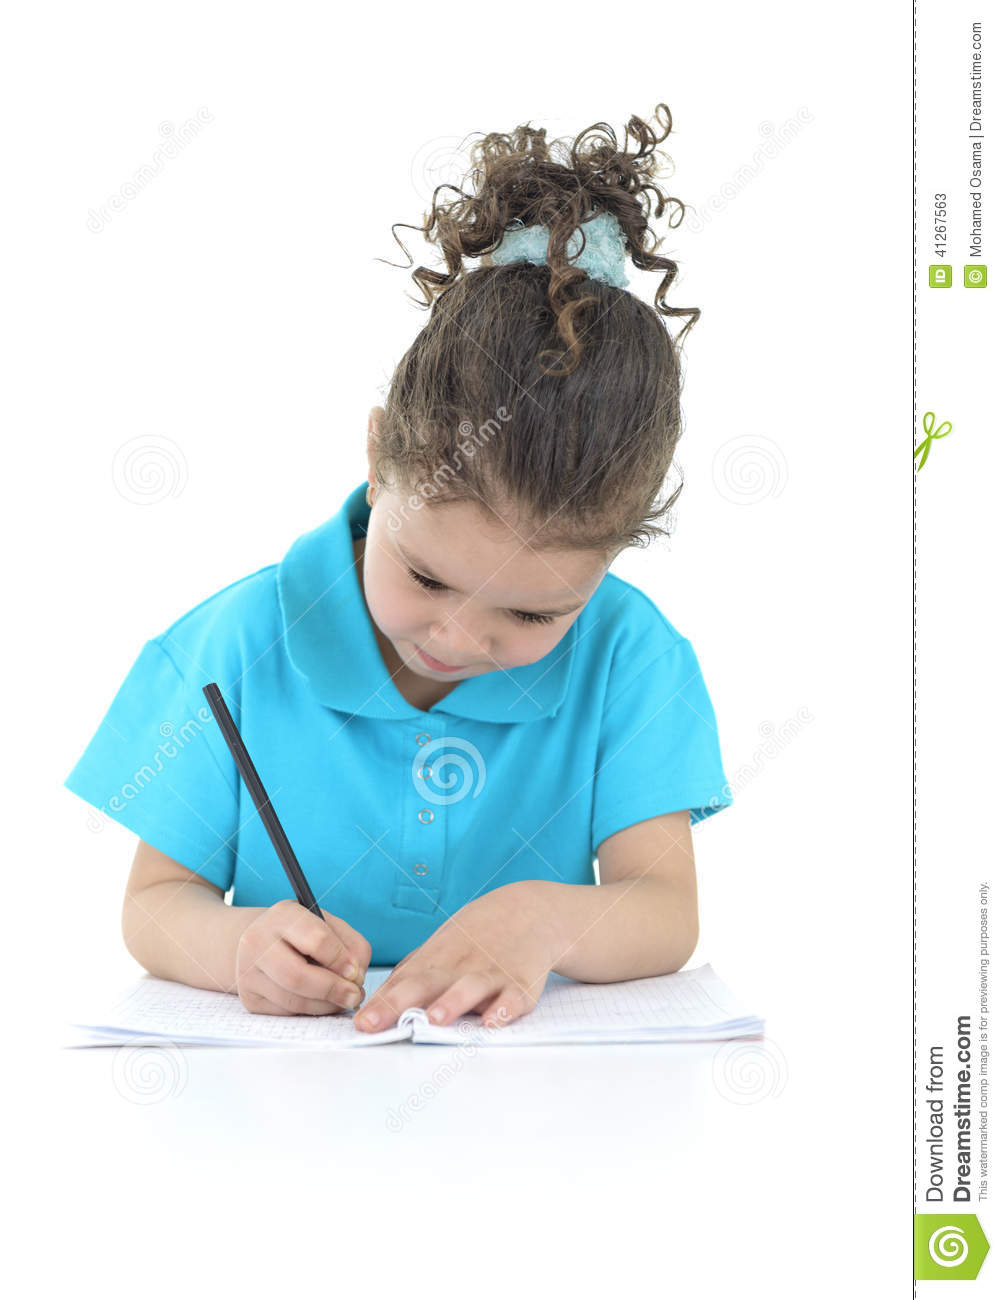 Little Girl Doing Her Homework Isolated on White Background.